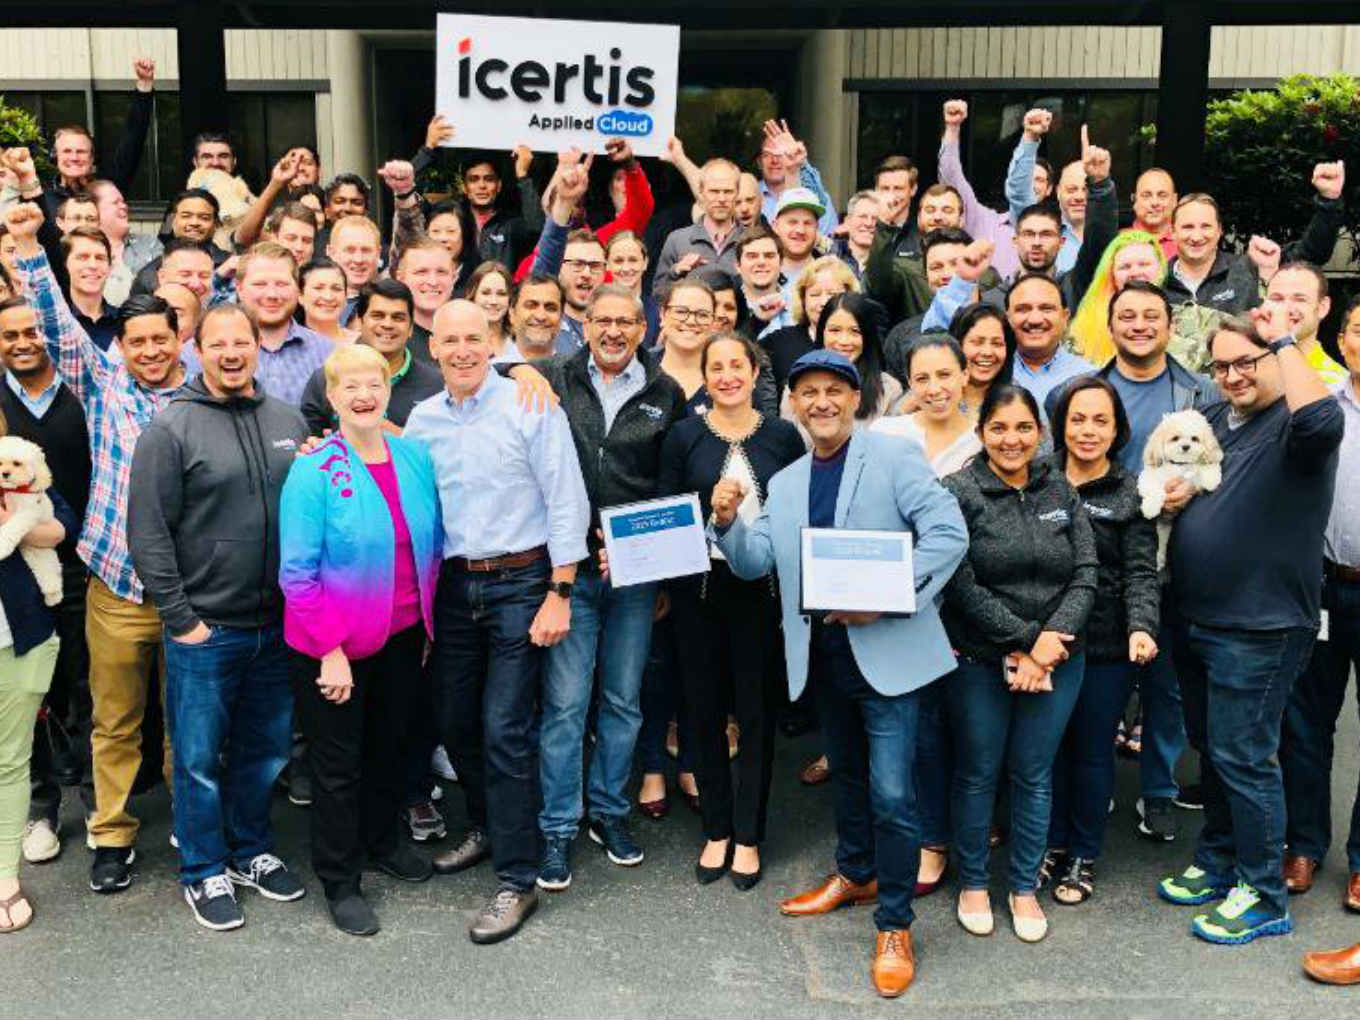 Icertis Valued At $2.8Bn After $80 Mn Series F Fundraise